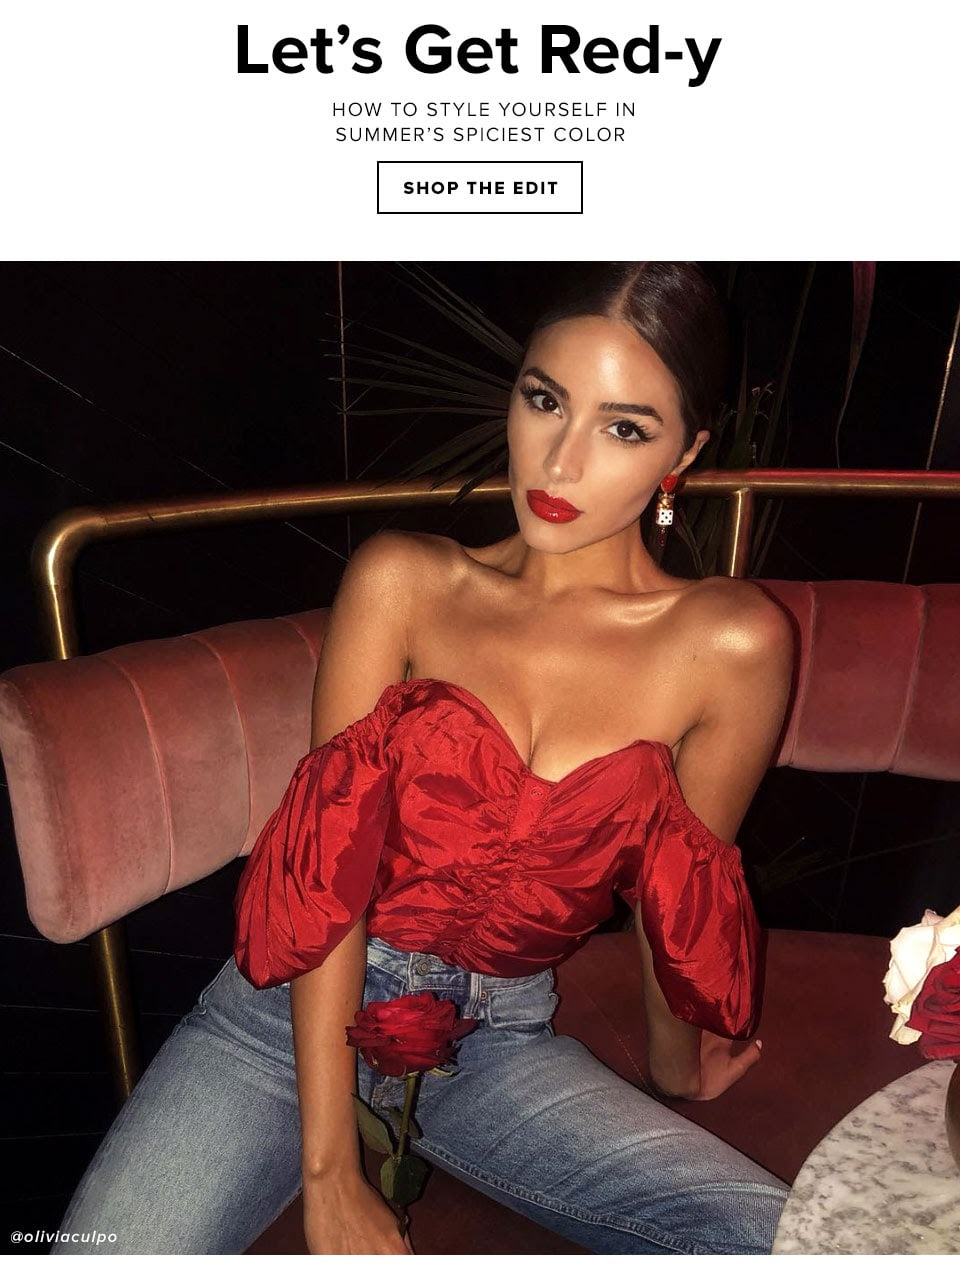 Lady in Red. The hottest hue of the season is taking over and there's no stopping it. Shop the Edit.